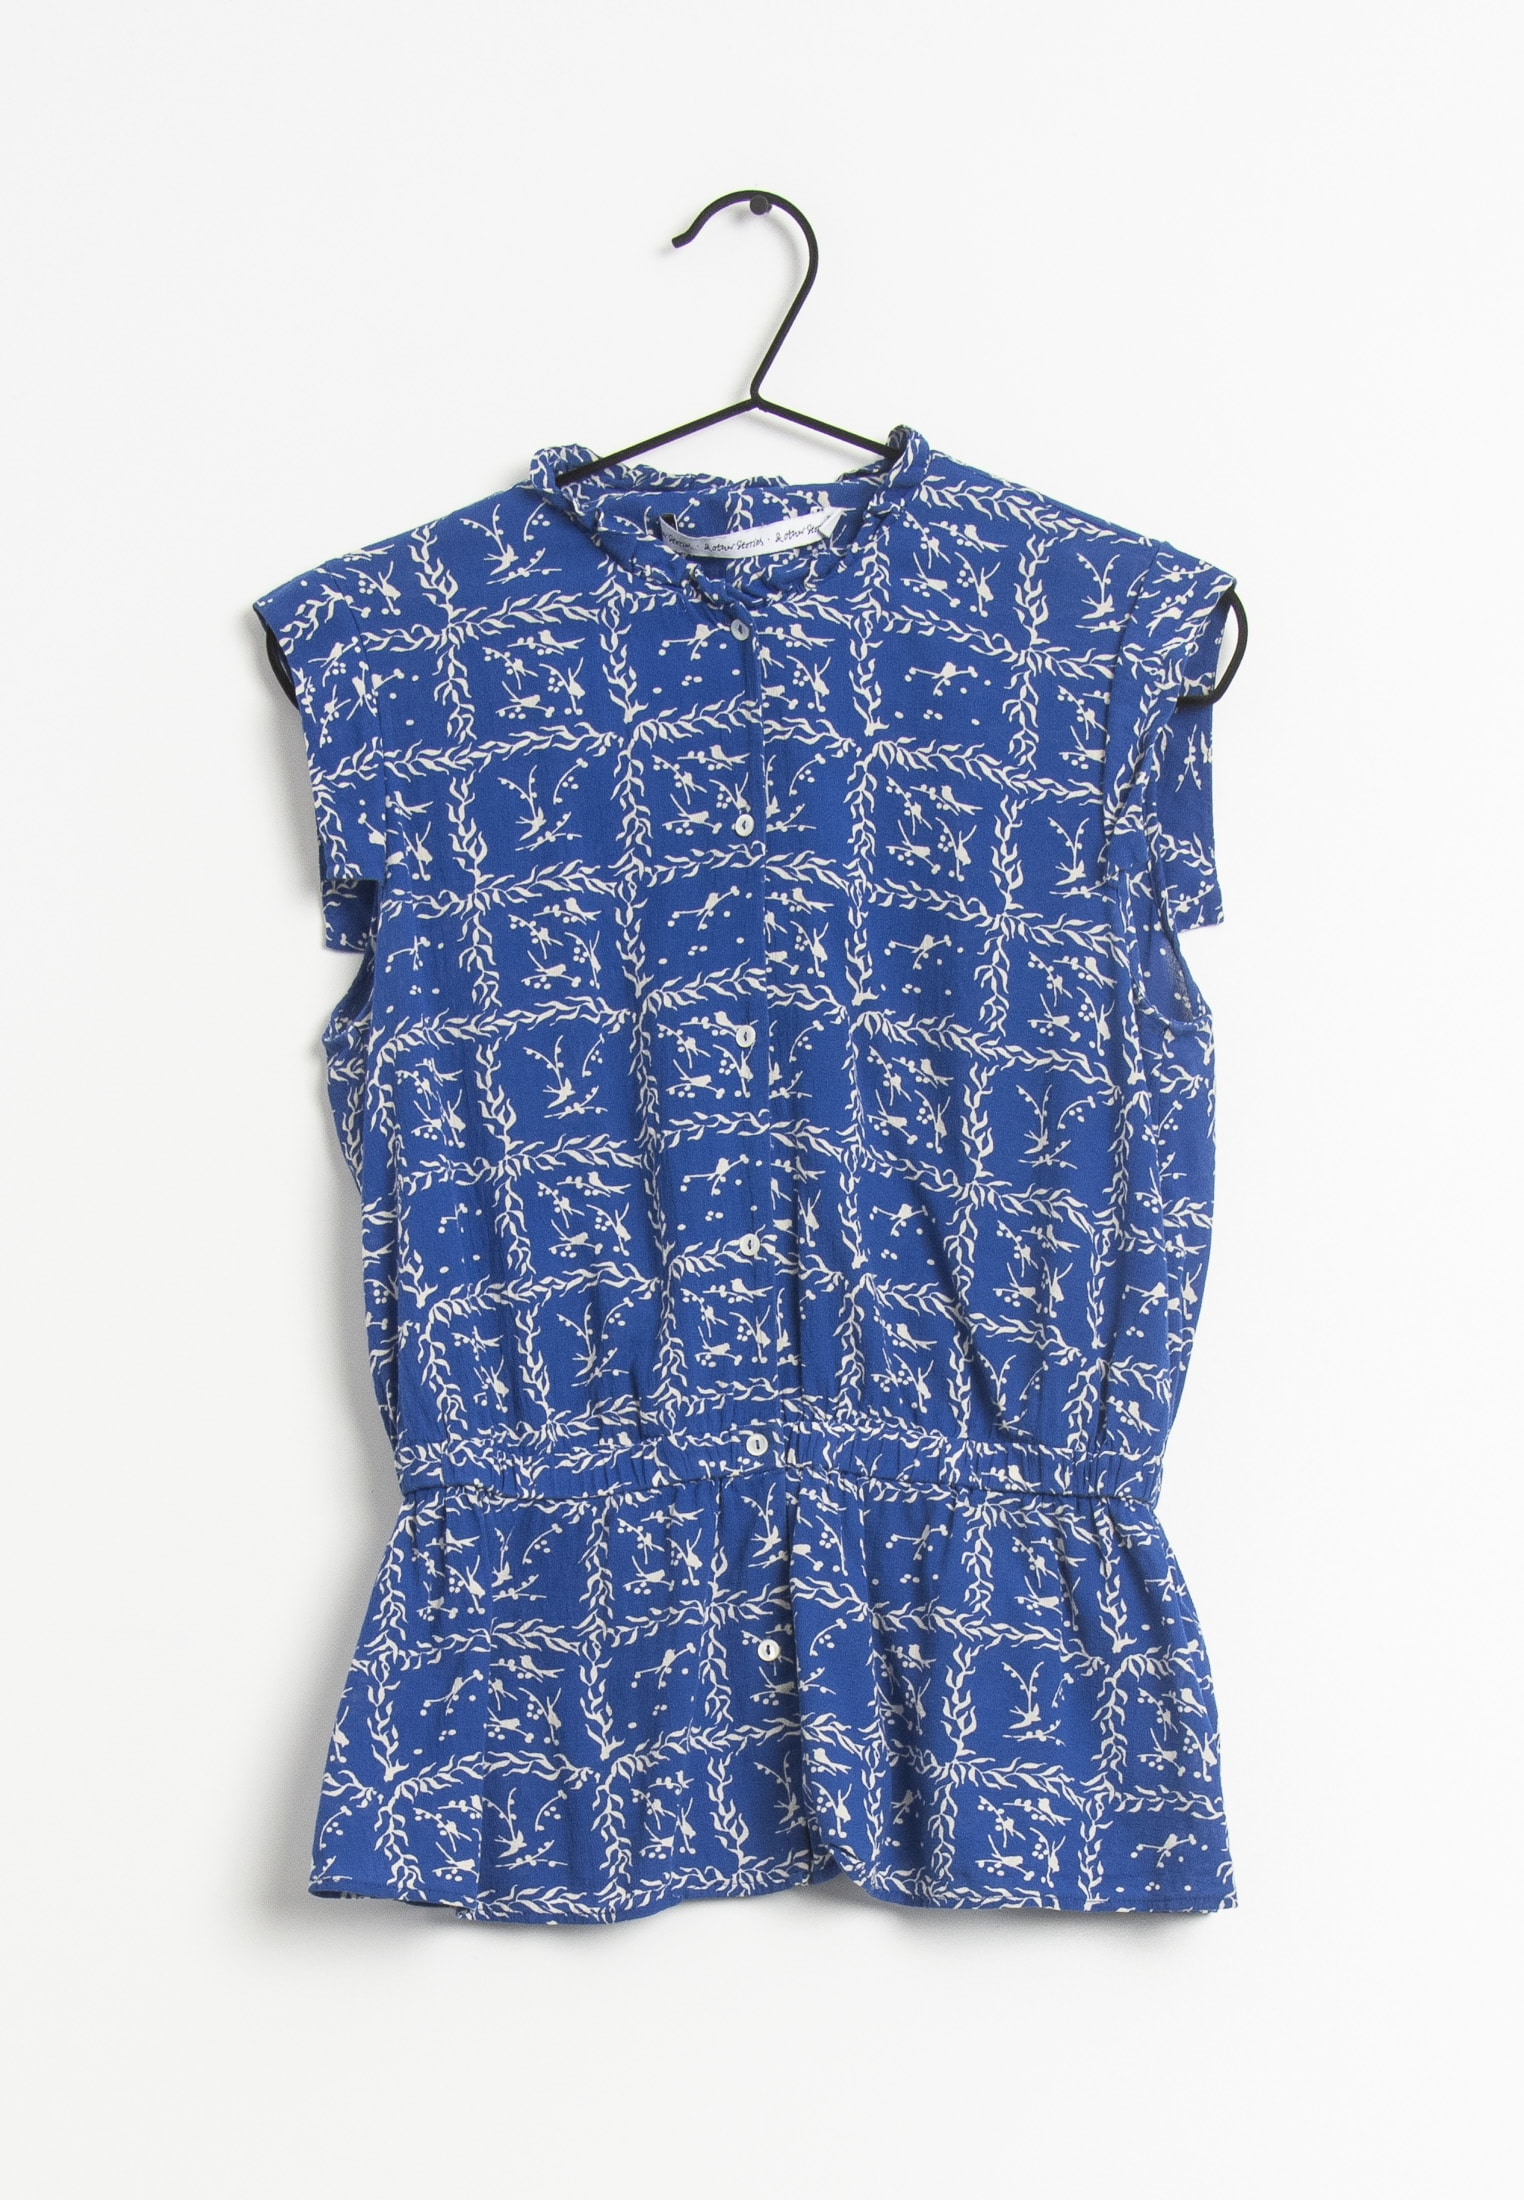 & other stories Bluse Blau Gr.36